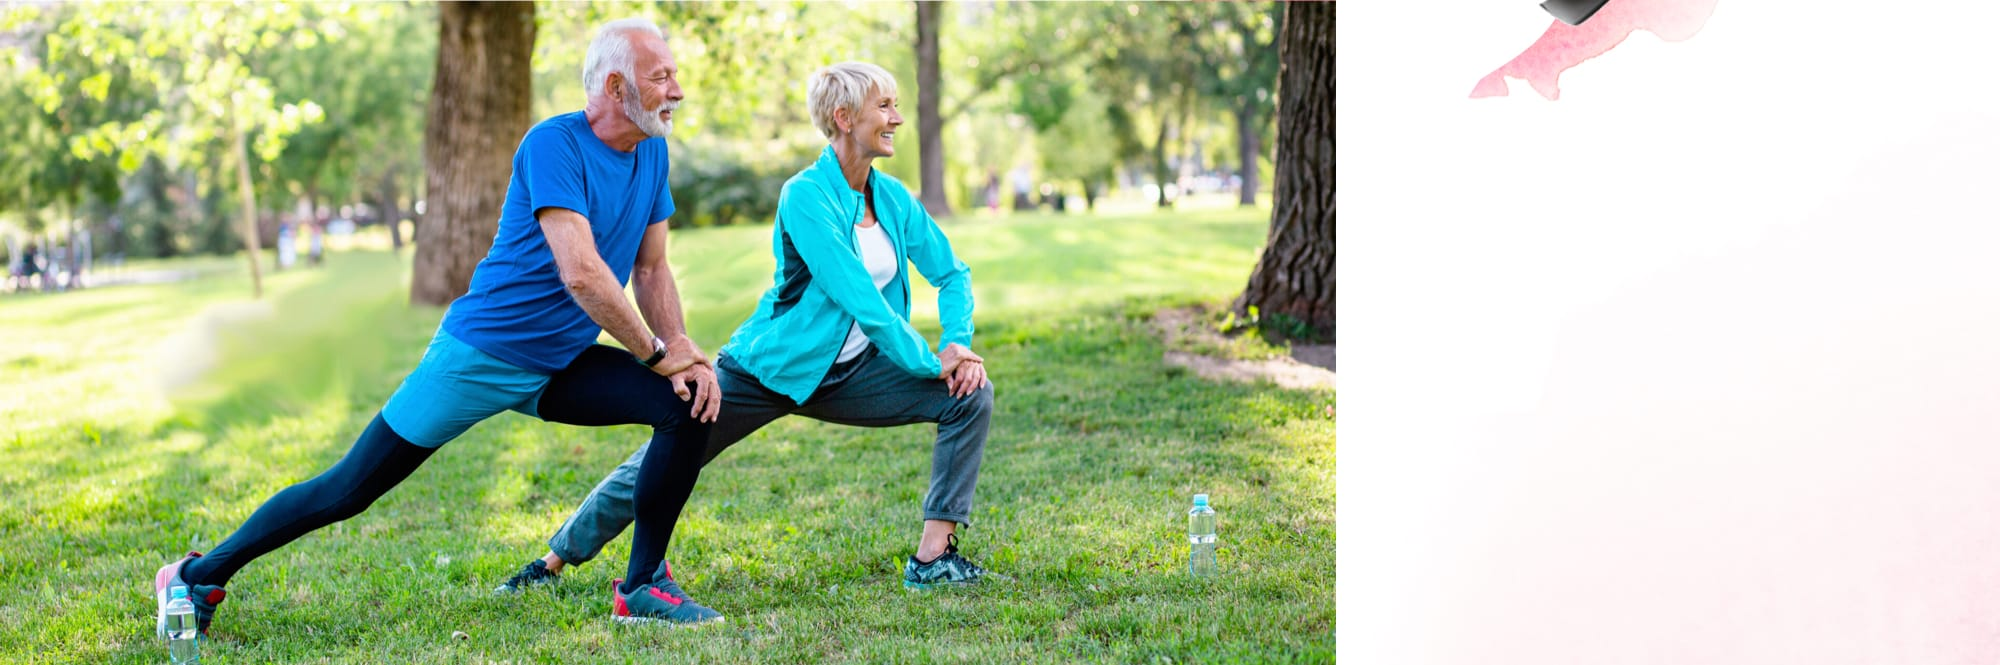 Elderly couple stays healthy and active by practices yoga together outside in a park